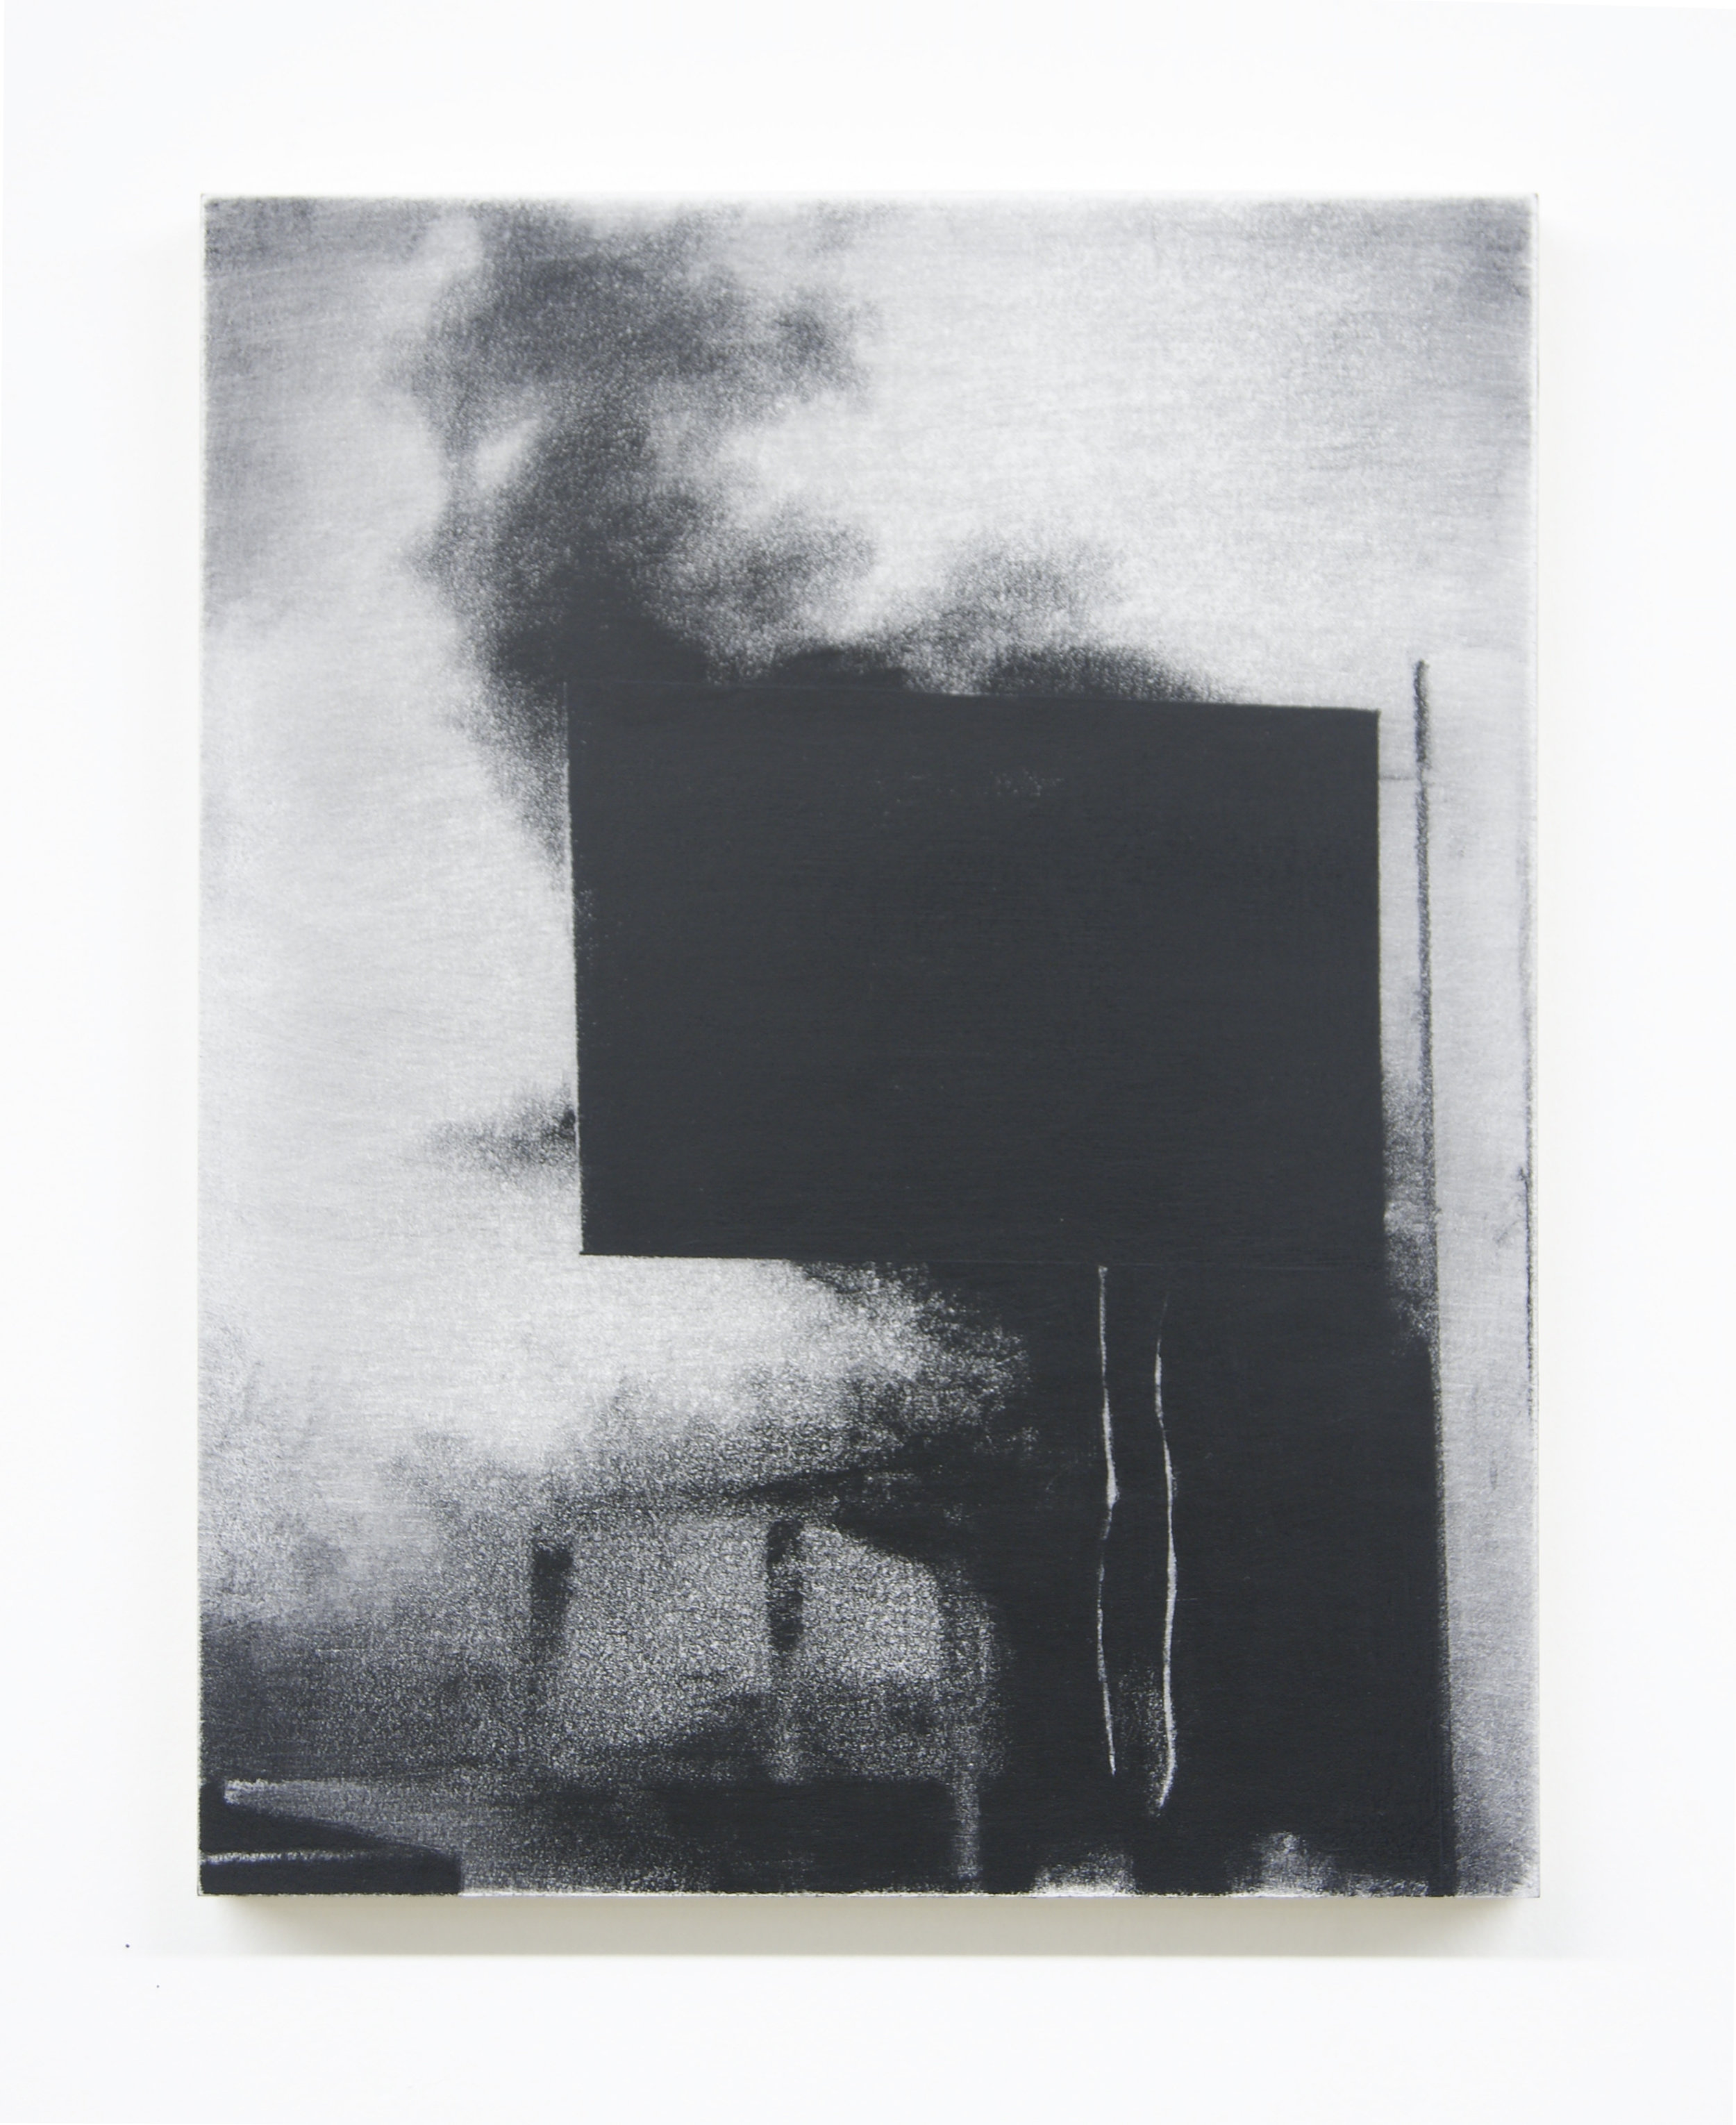 Banner, 2015  Acrylic on panel, 14 x 11 inches